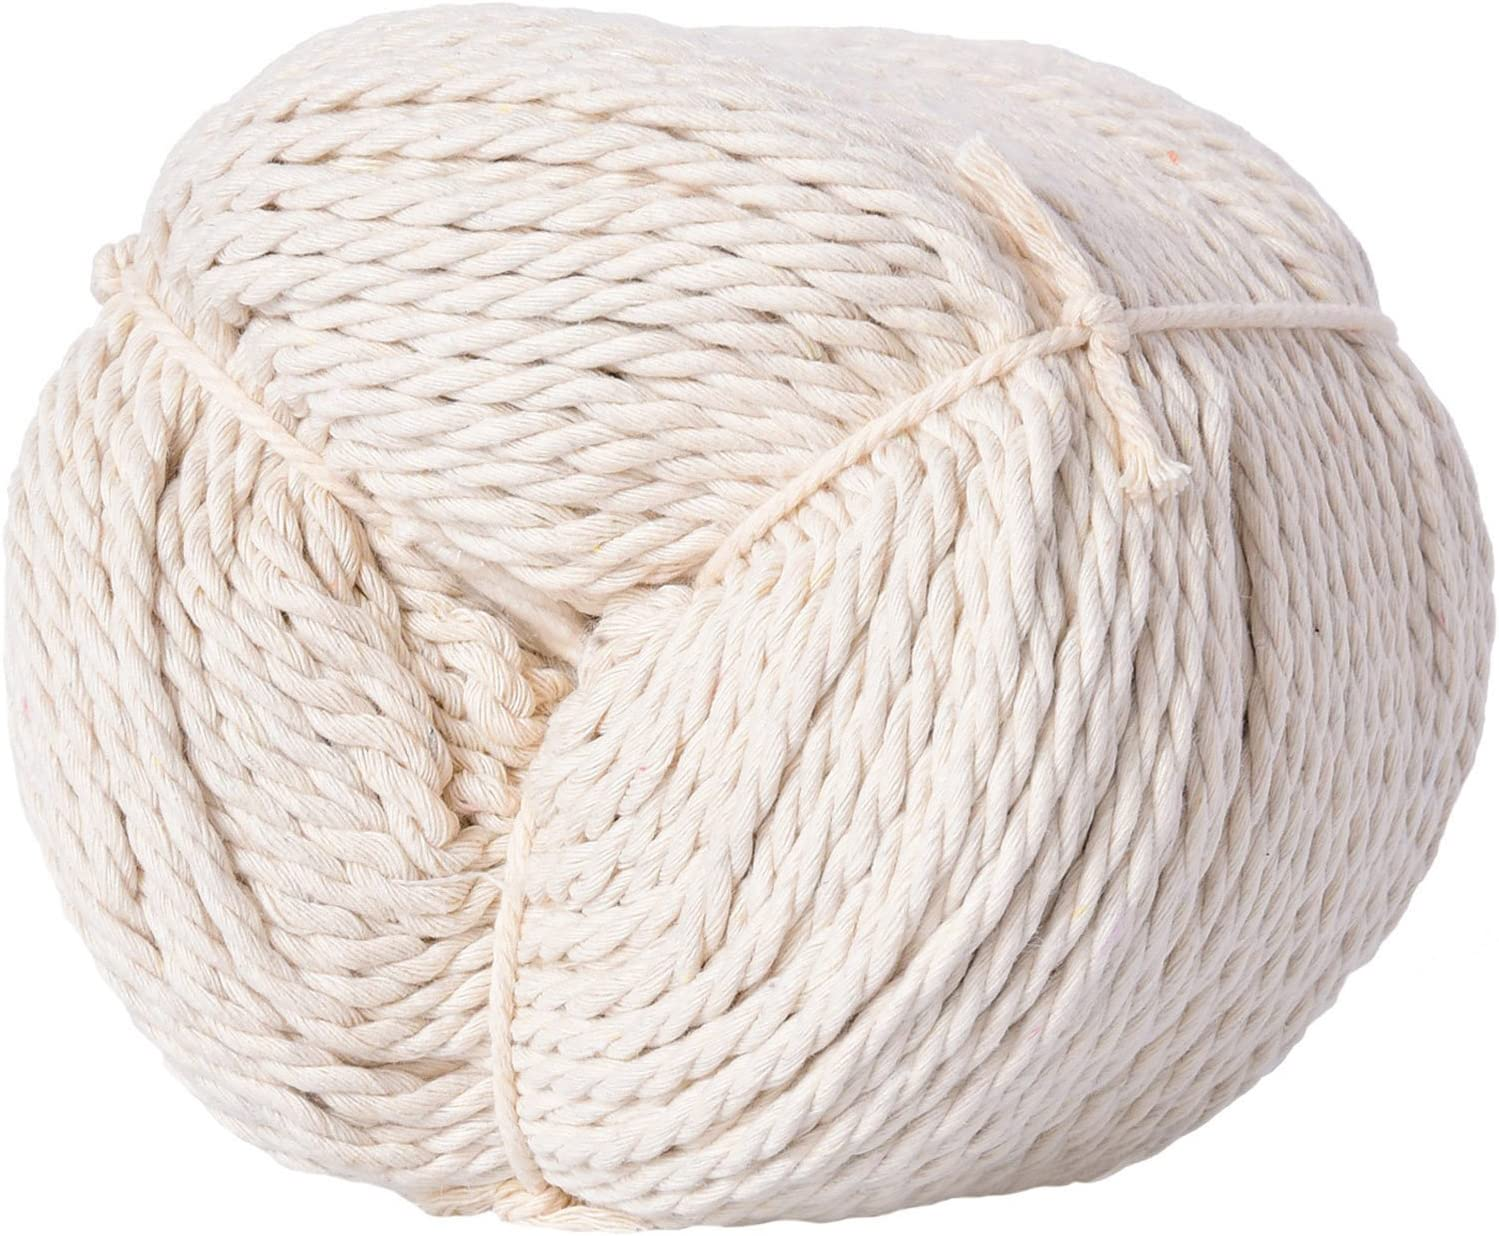 Natural Cotton Macrame Rope for Wall Hang#51 XKDOUS Macrame Cord 4mm x 220Yards